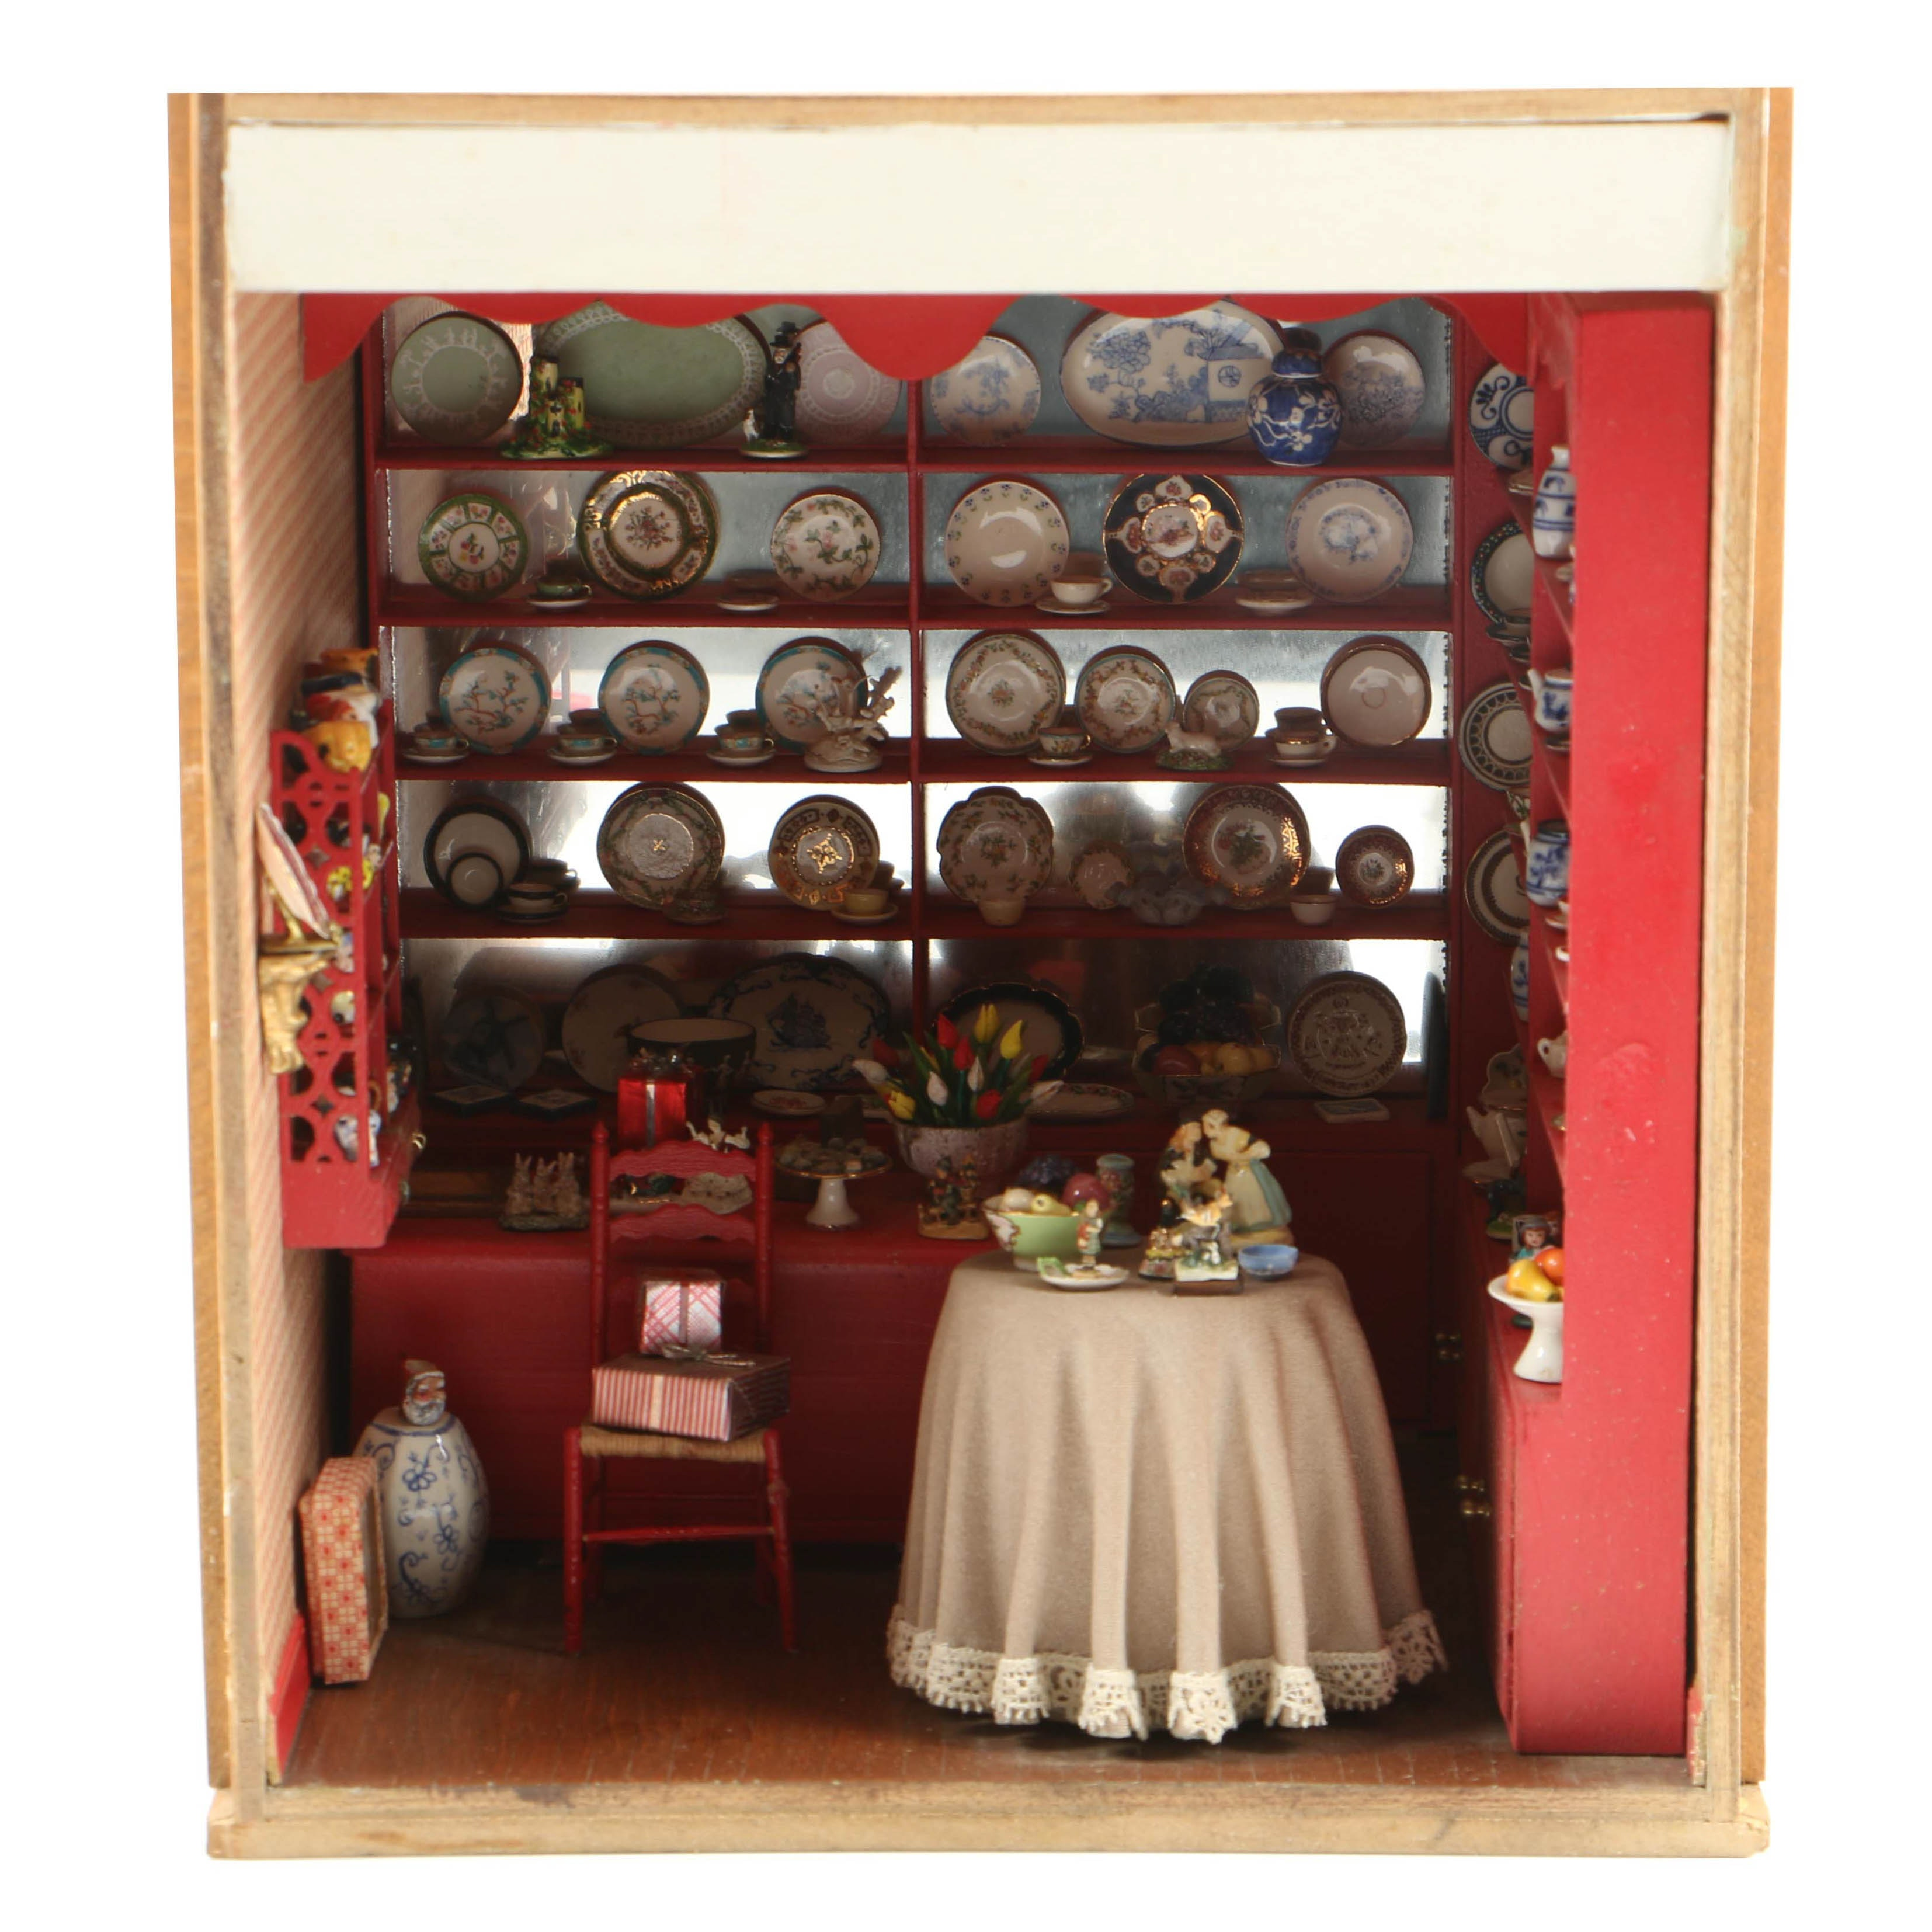 Miniature Porcelain Shop From The Charles Tebelman Collection